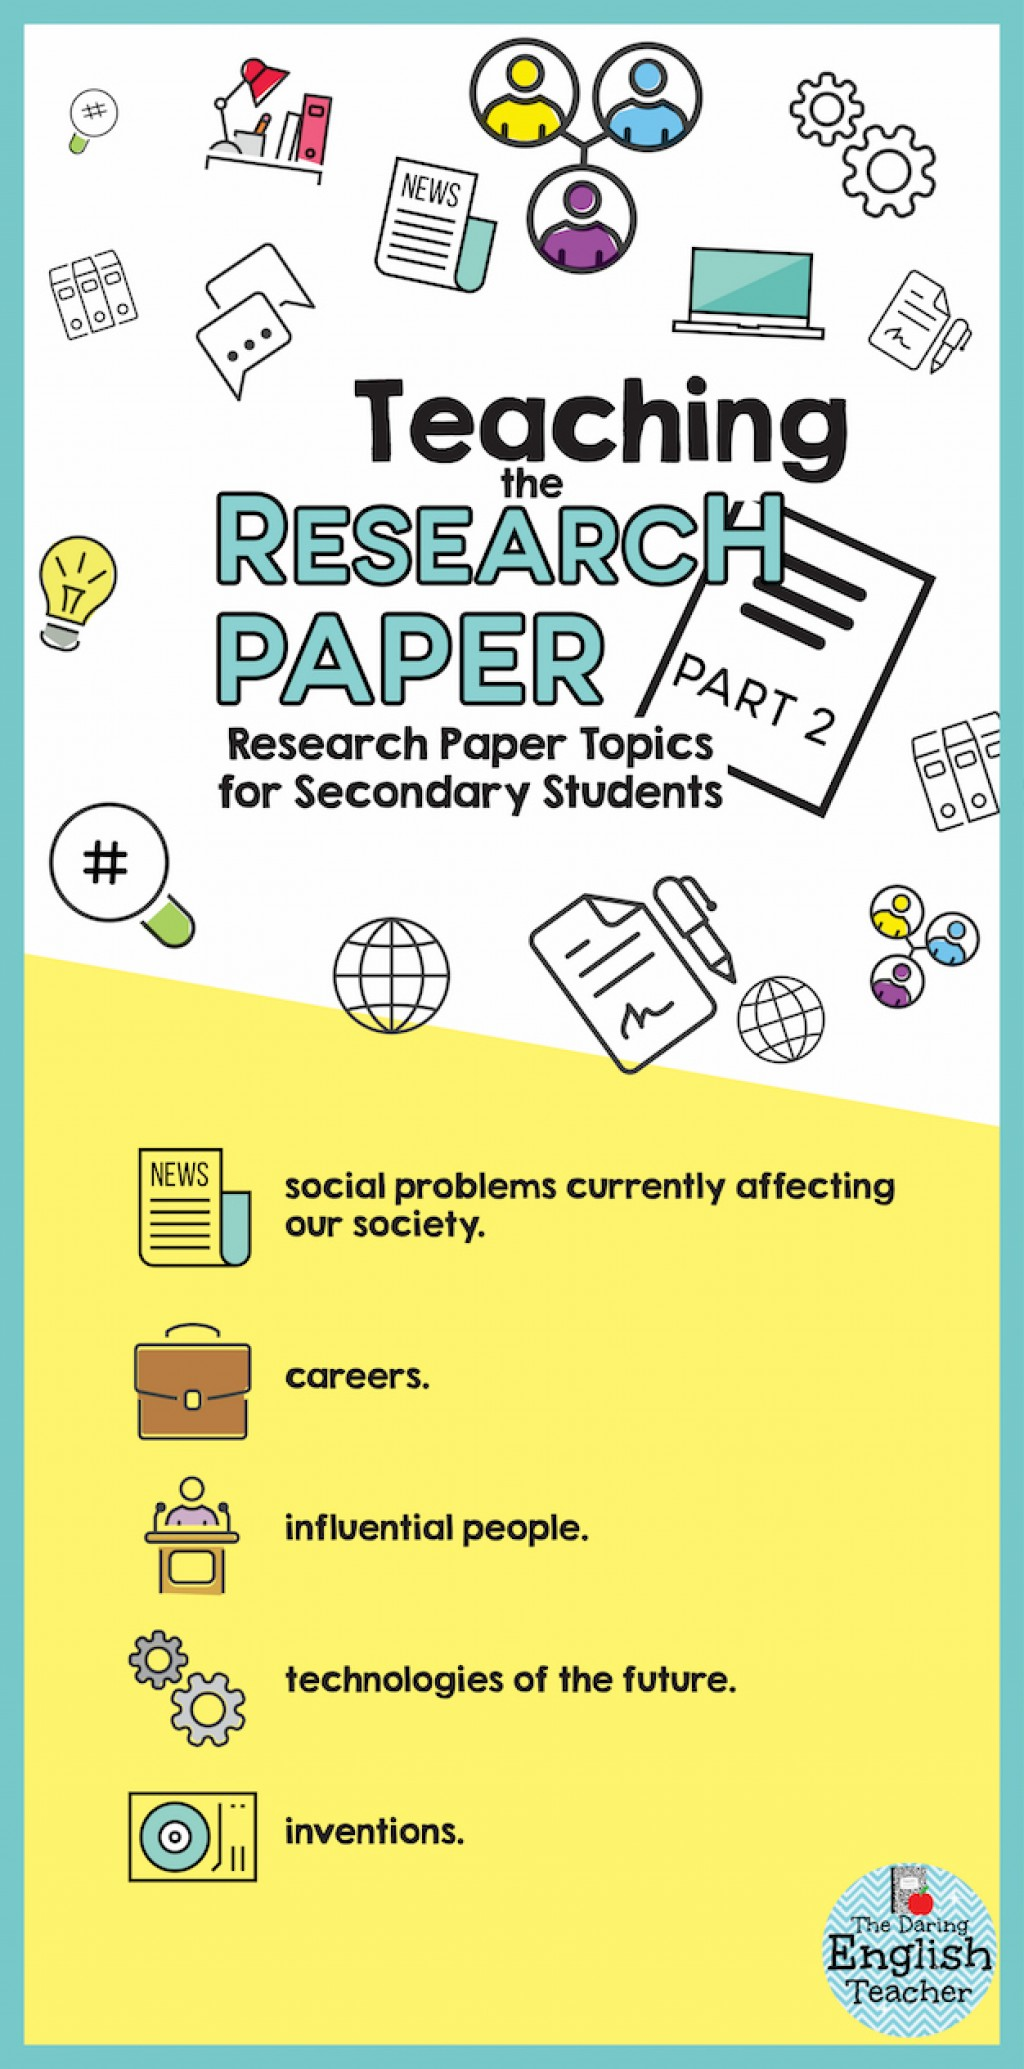 020 Infographic2bp22b2 Research Paper Topic For Unusual A Topics On Education Best High School Papers Business Management Large